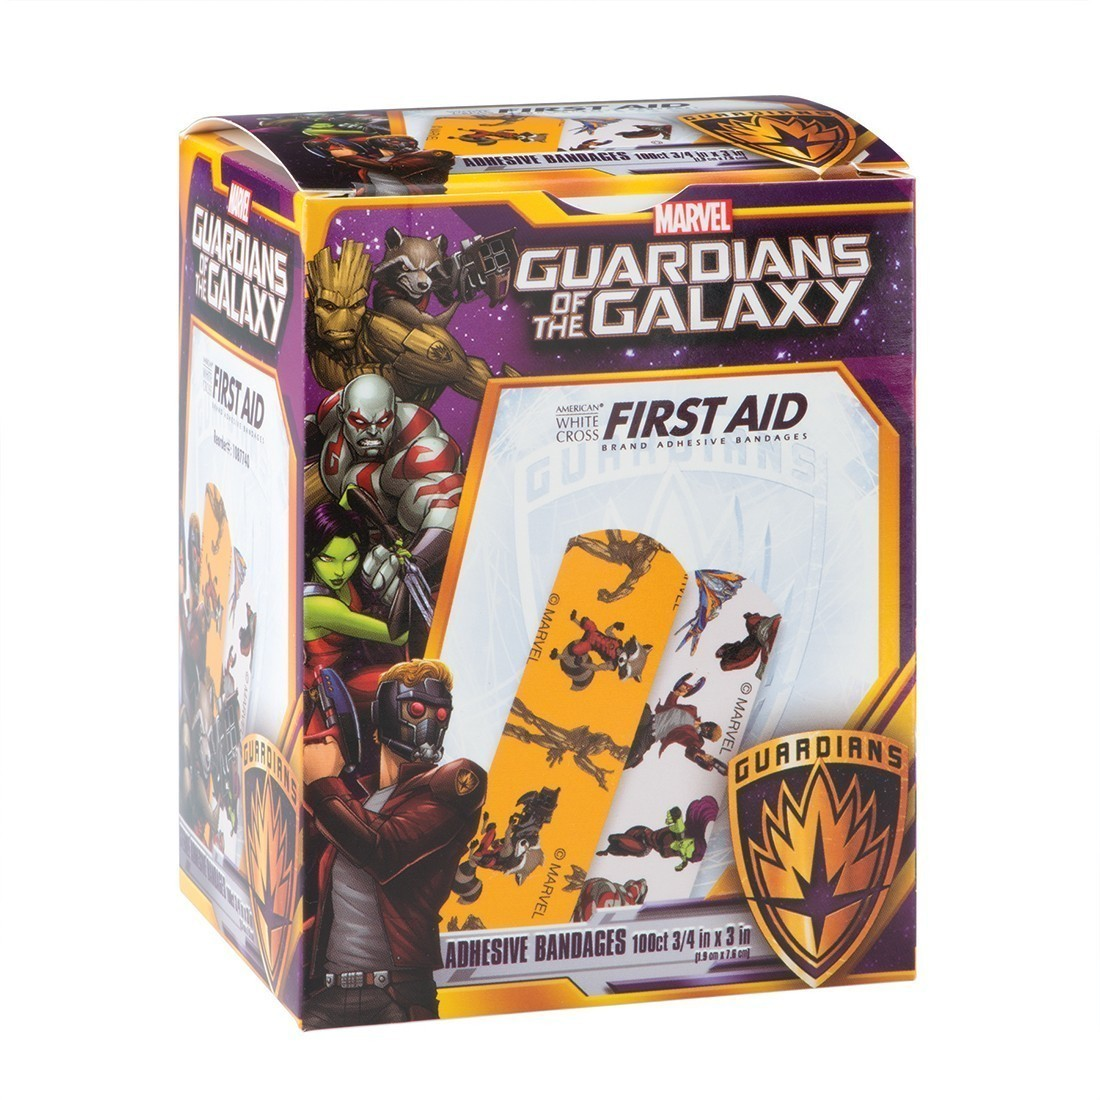 First Aid Guardians of the Galaxy Bandages  [image]